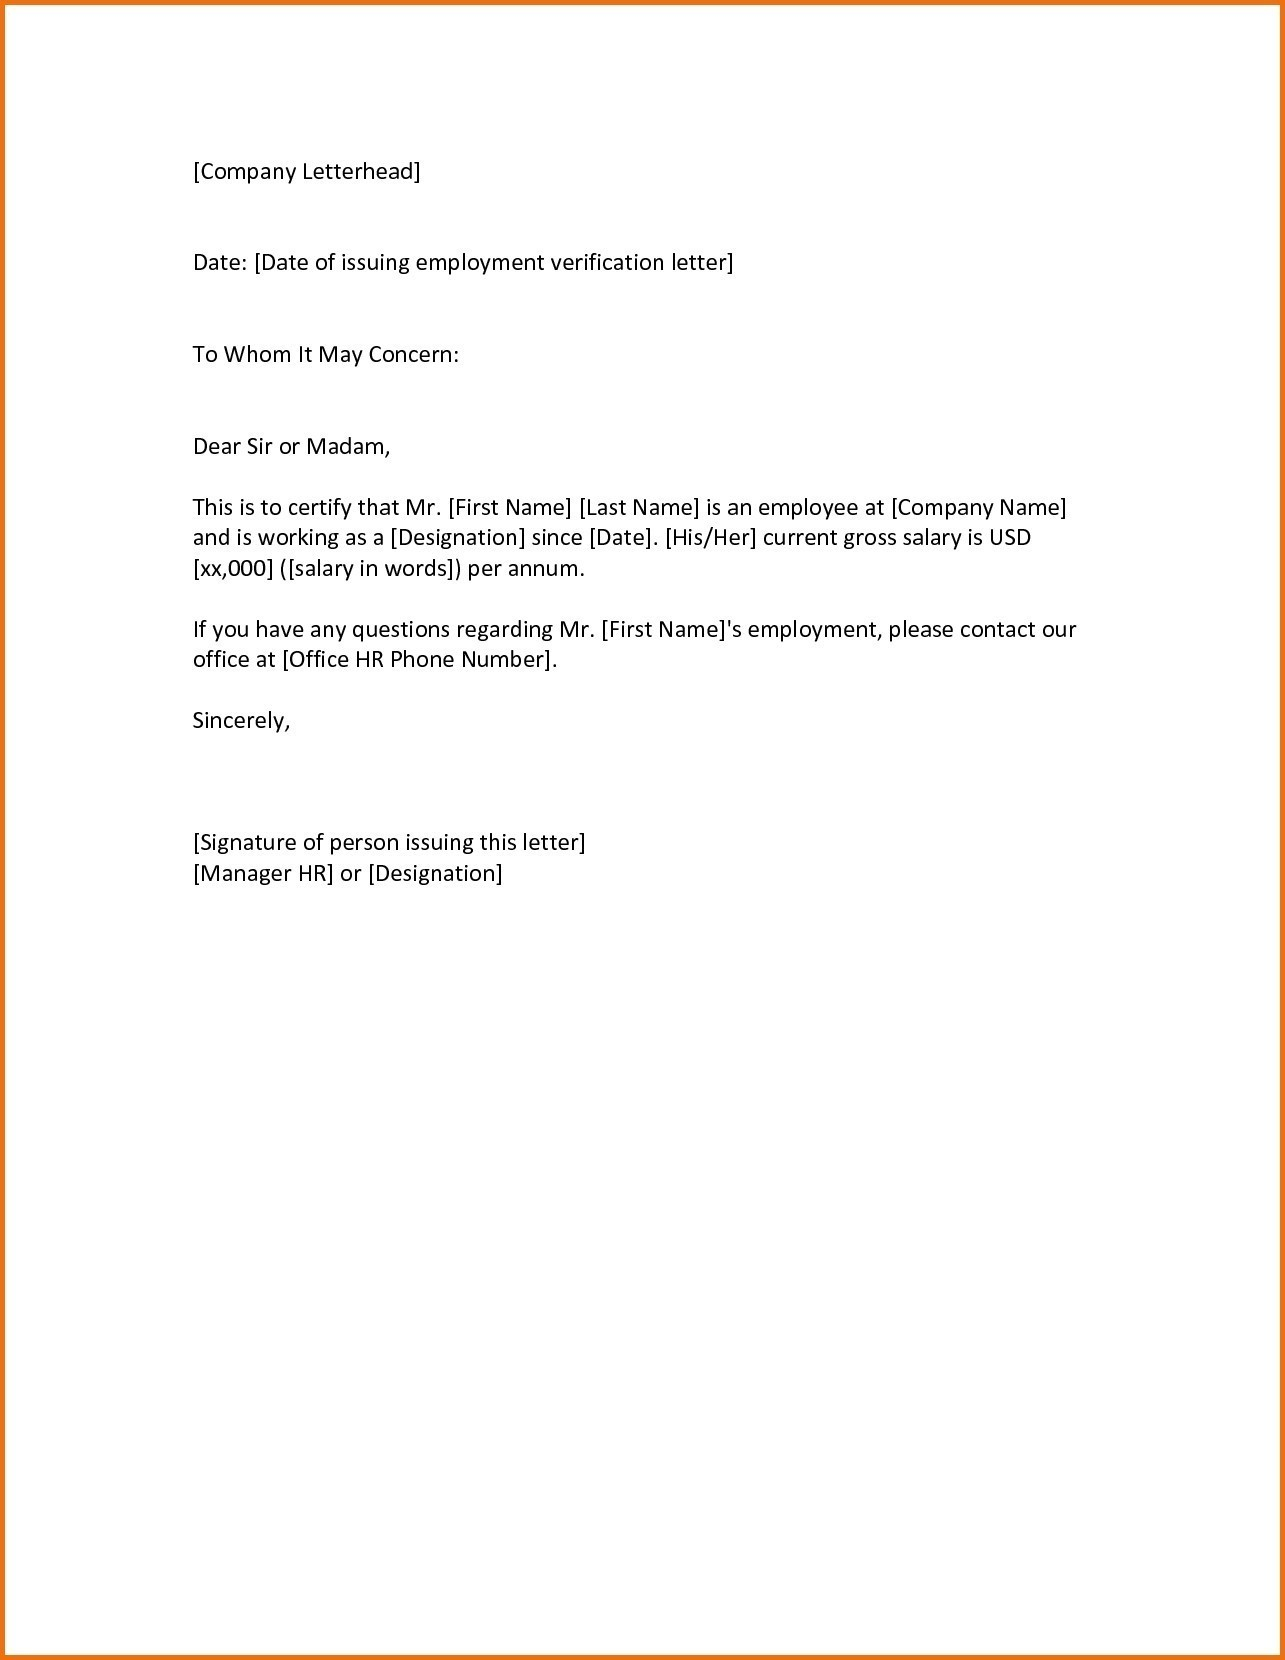 employment verification letter to whom it may concern template example-Request Letter format to whom It May Concern Fresh Pany Letter format for Employee New Employment 4-e